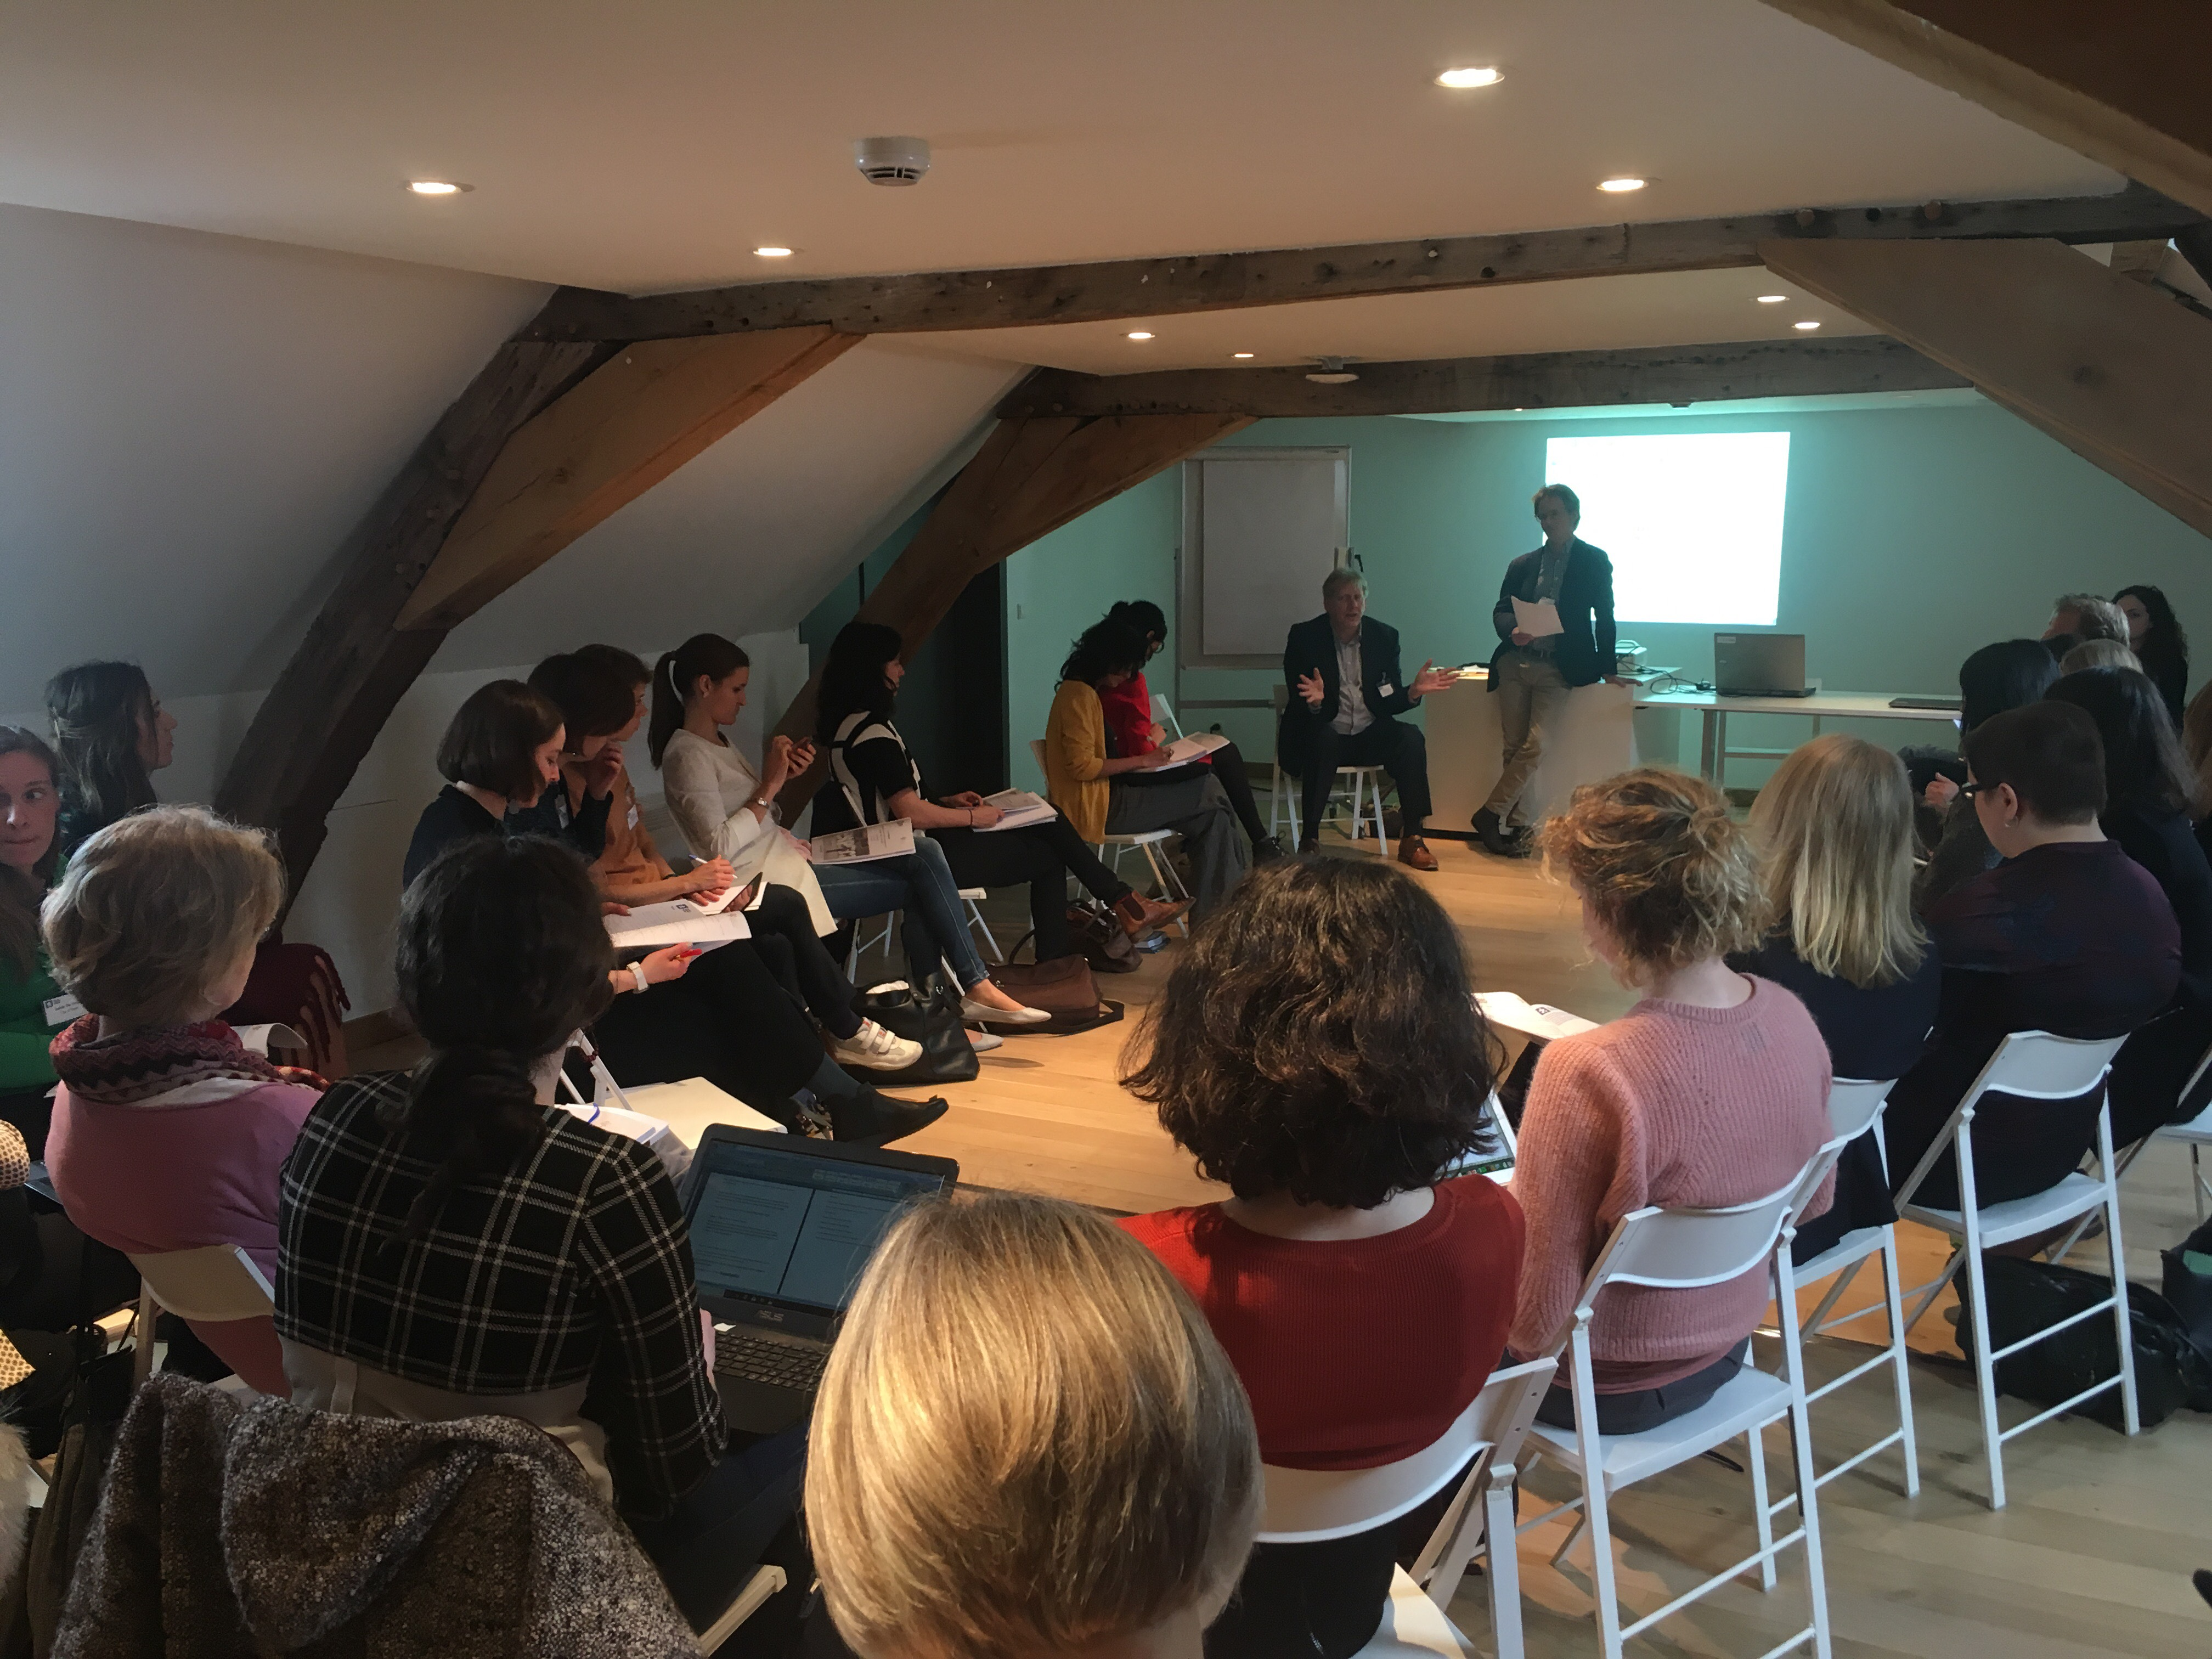 Workshop at the Lost in Migration 2 Conference in Brussels